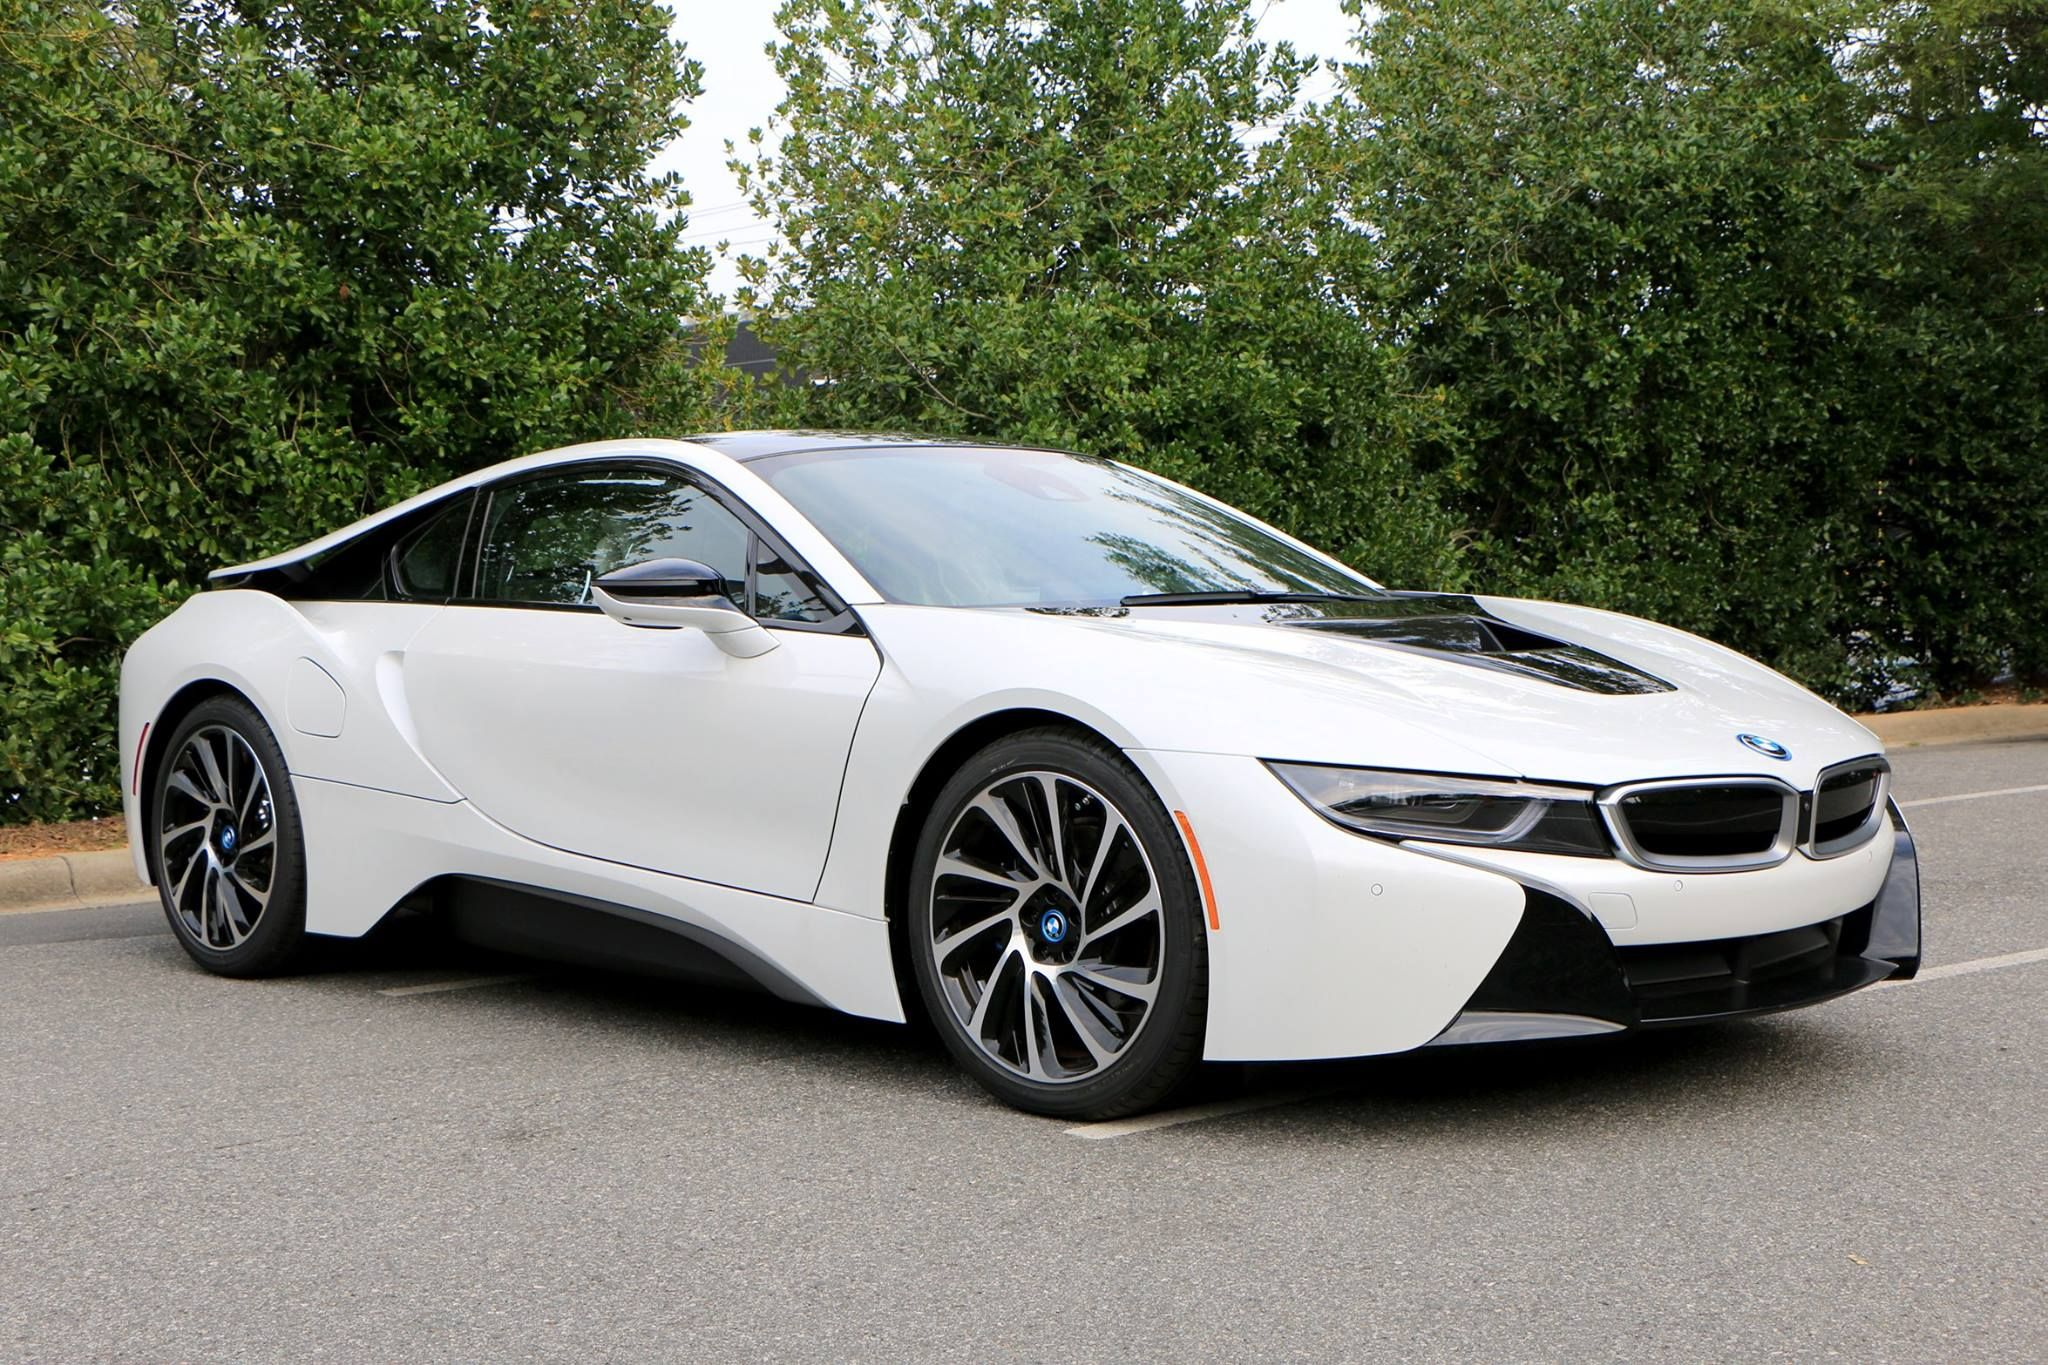 2016 BMW i8  Confused about what to buy Call 1800CARSHOW for